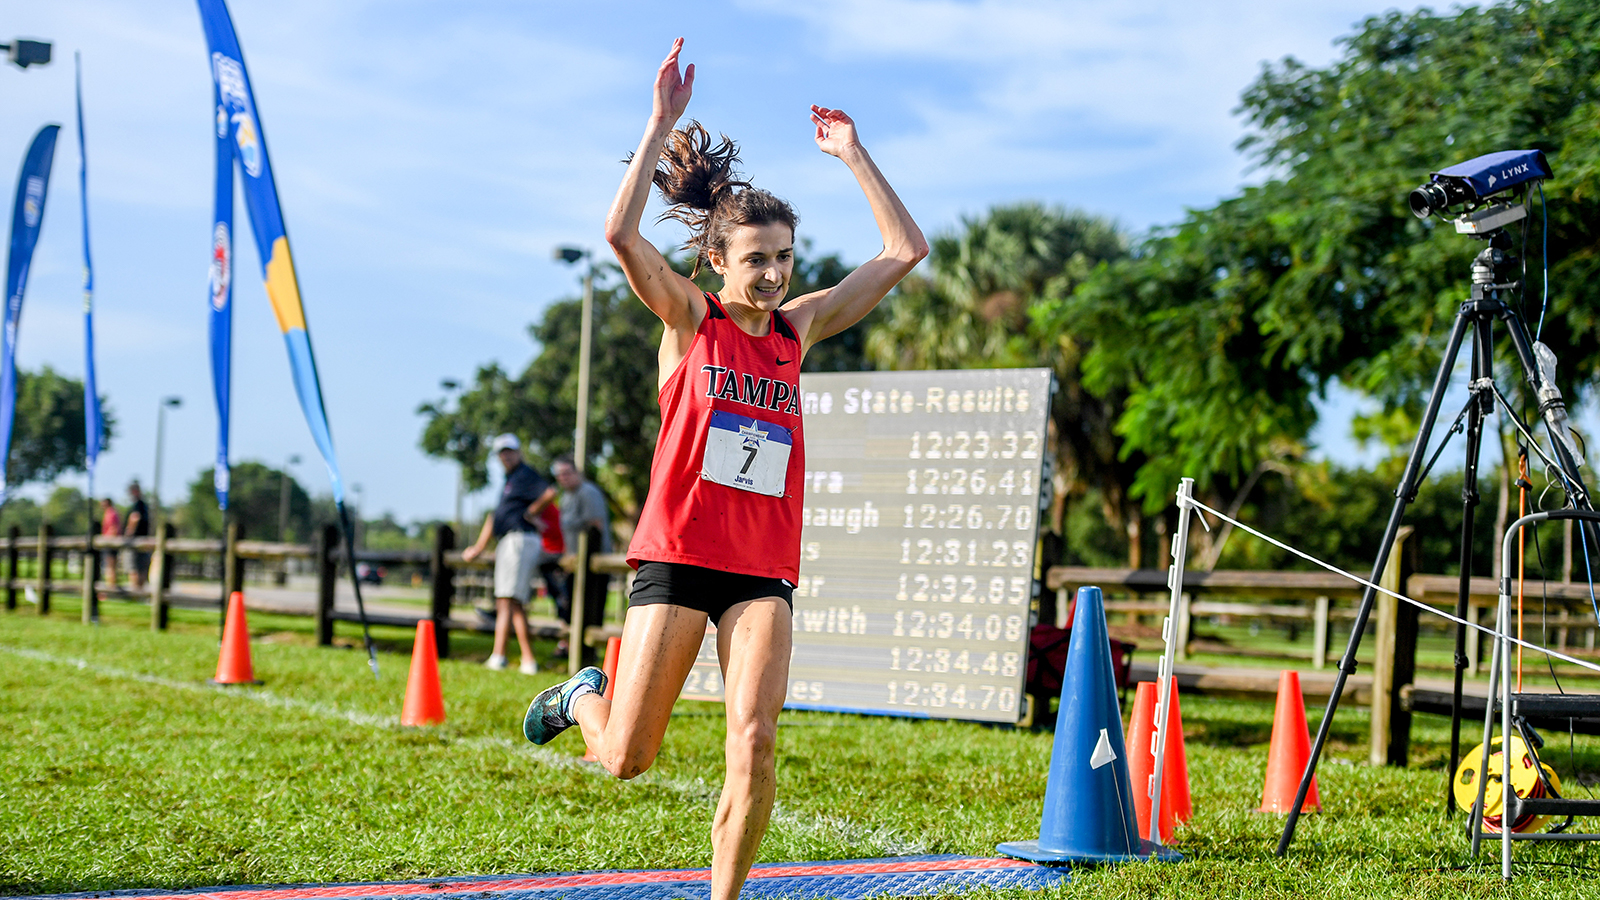 Zoe Jarvis running across a finish line